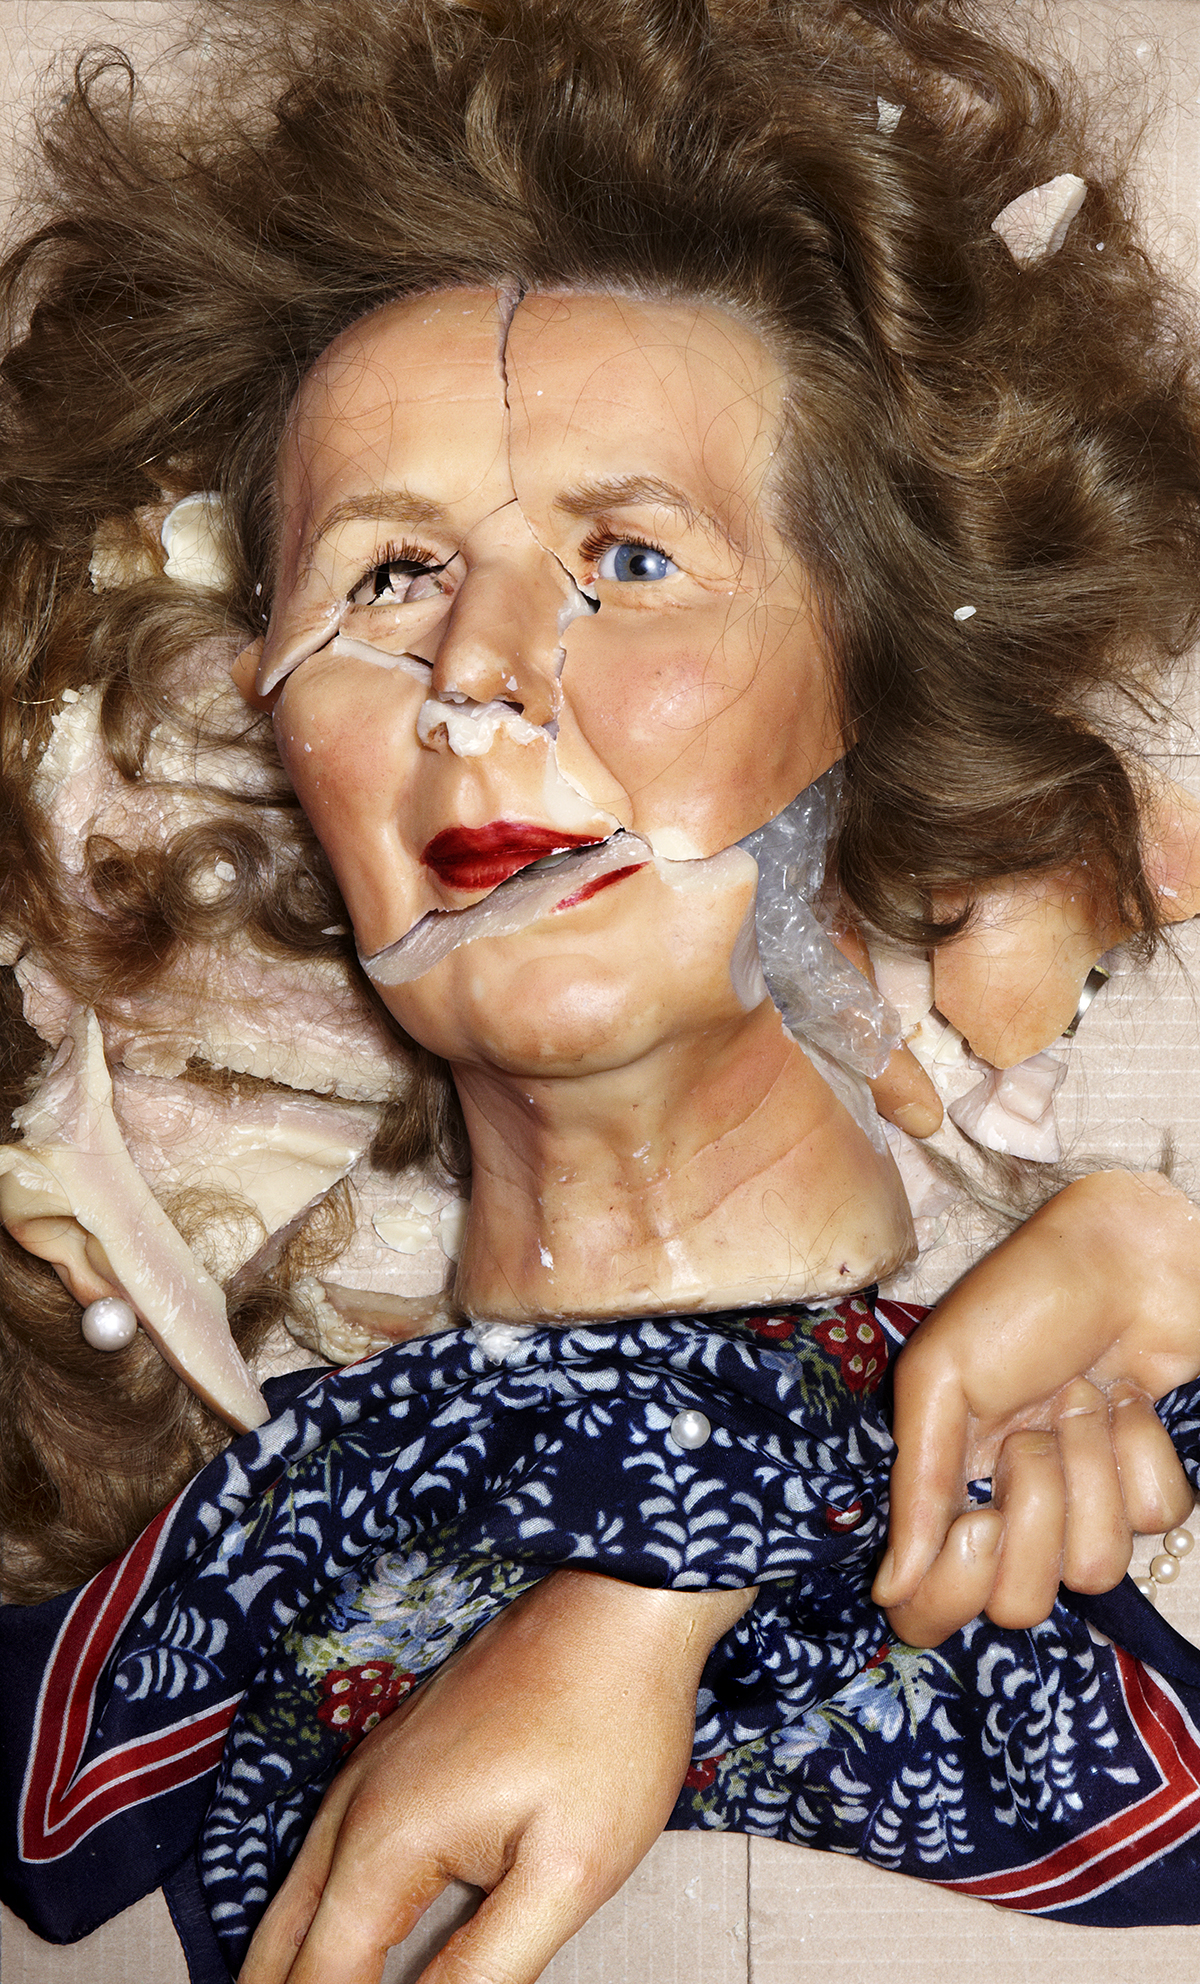 LACHAPELLE_15 Margaret, 2012 Chromogenic Print ©David LaChapelle